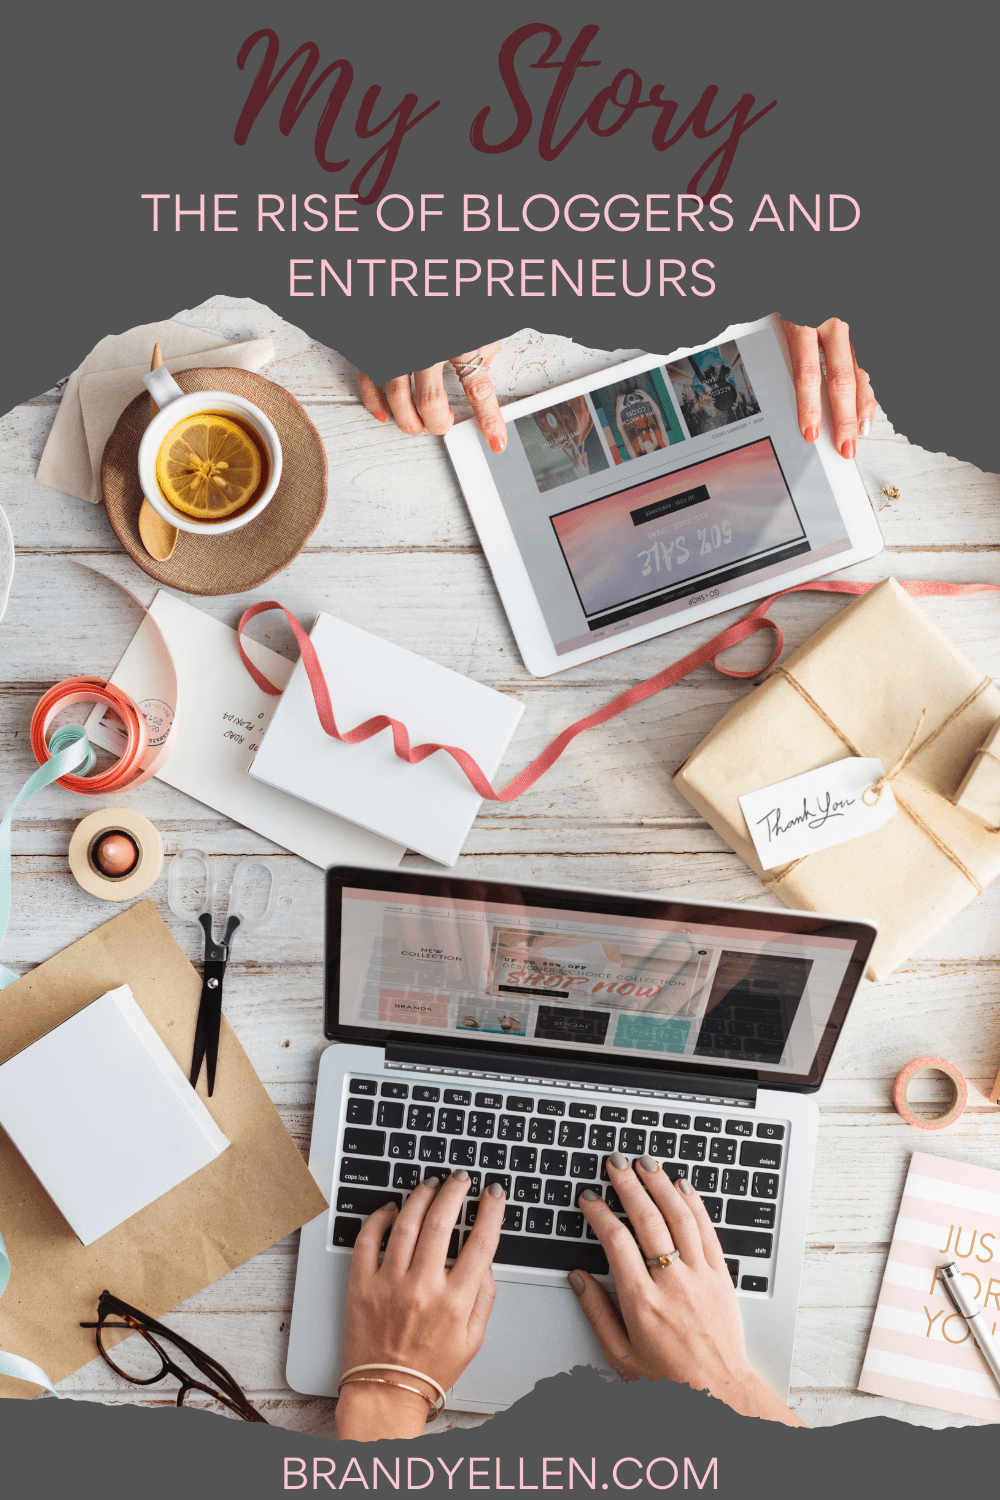 The Rise of Bloggers and Entrepreneurs